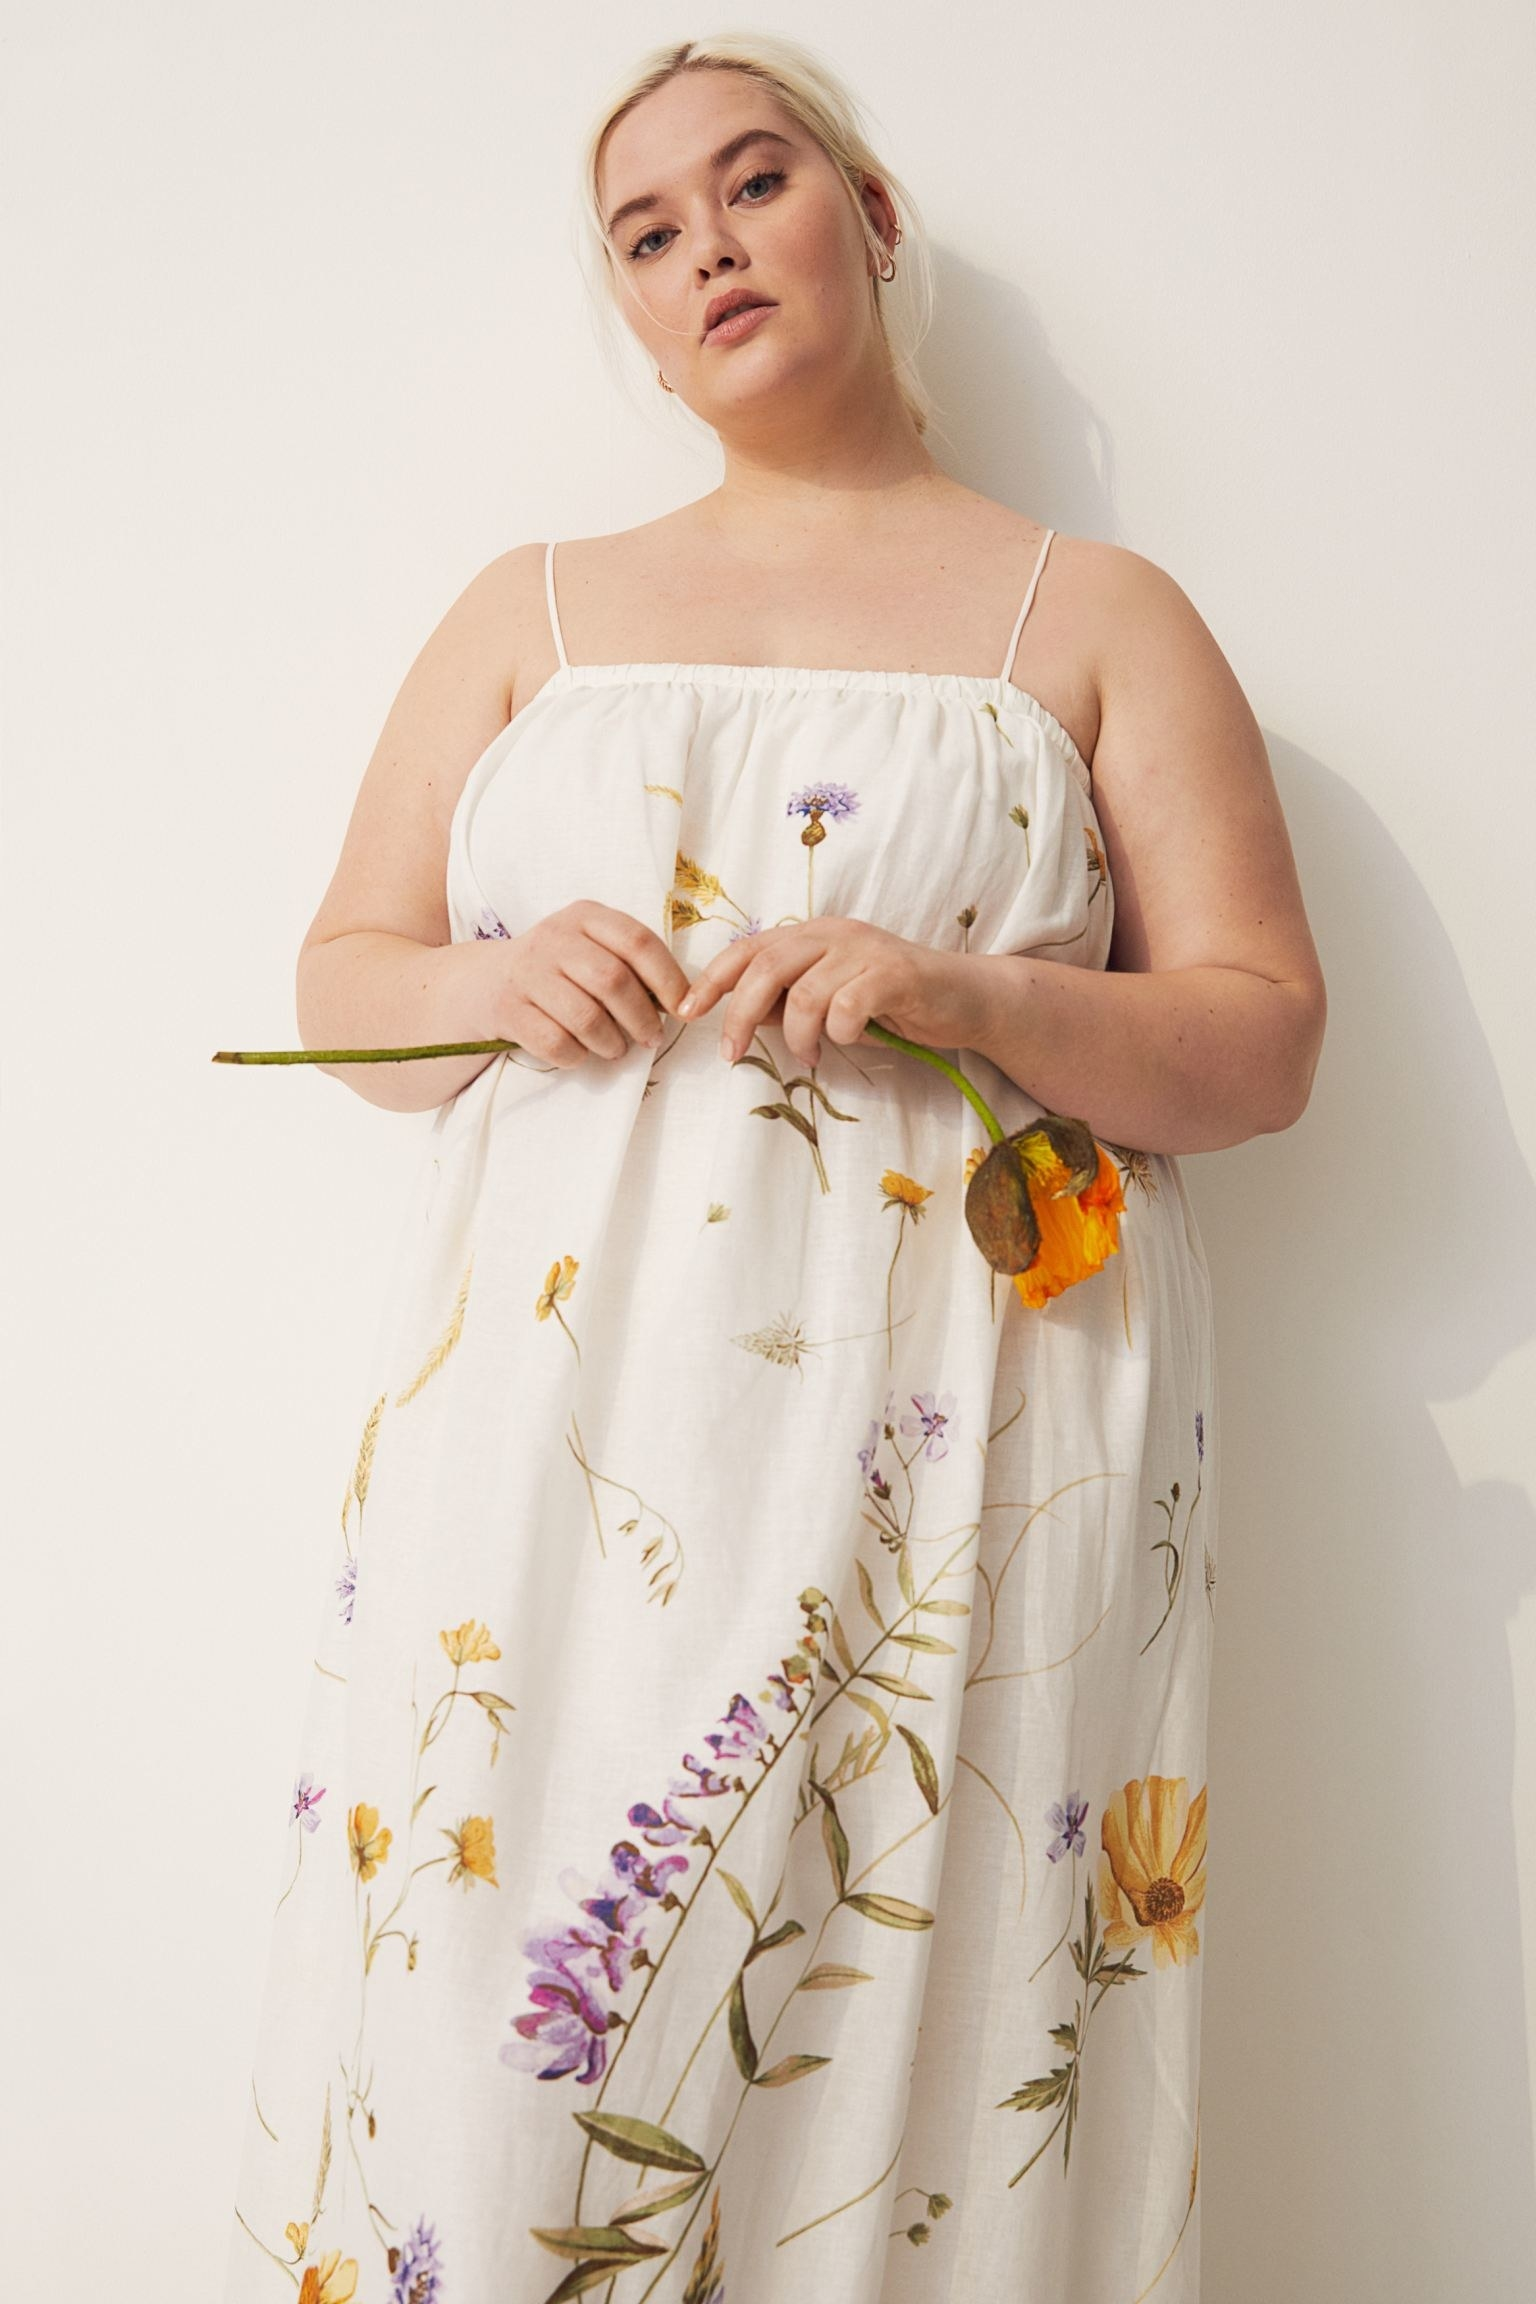 model wearing white dress with floral prints